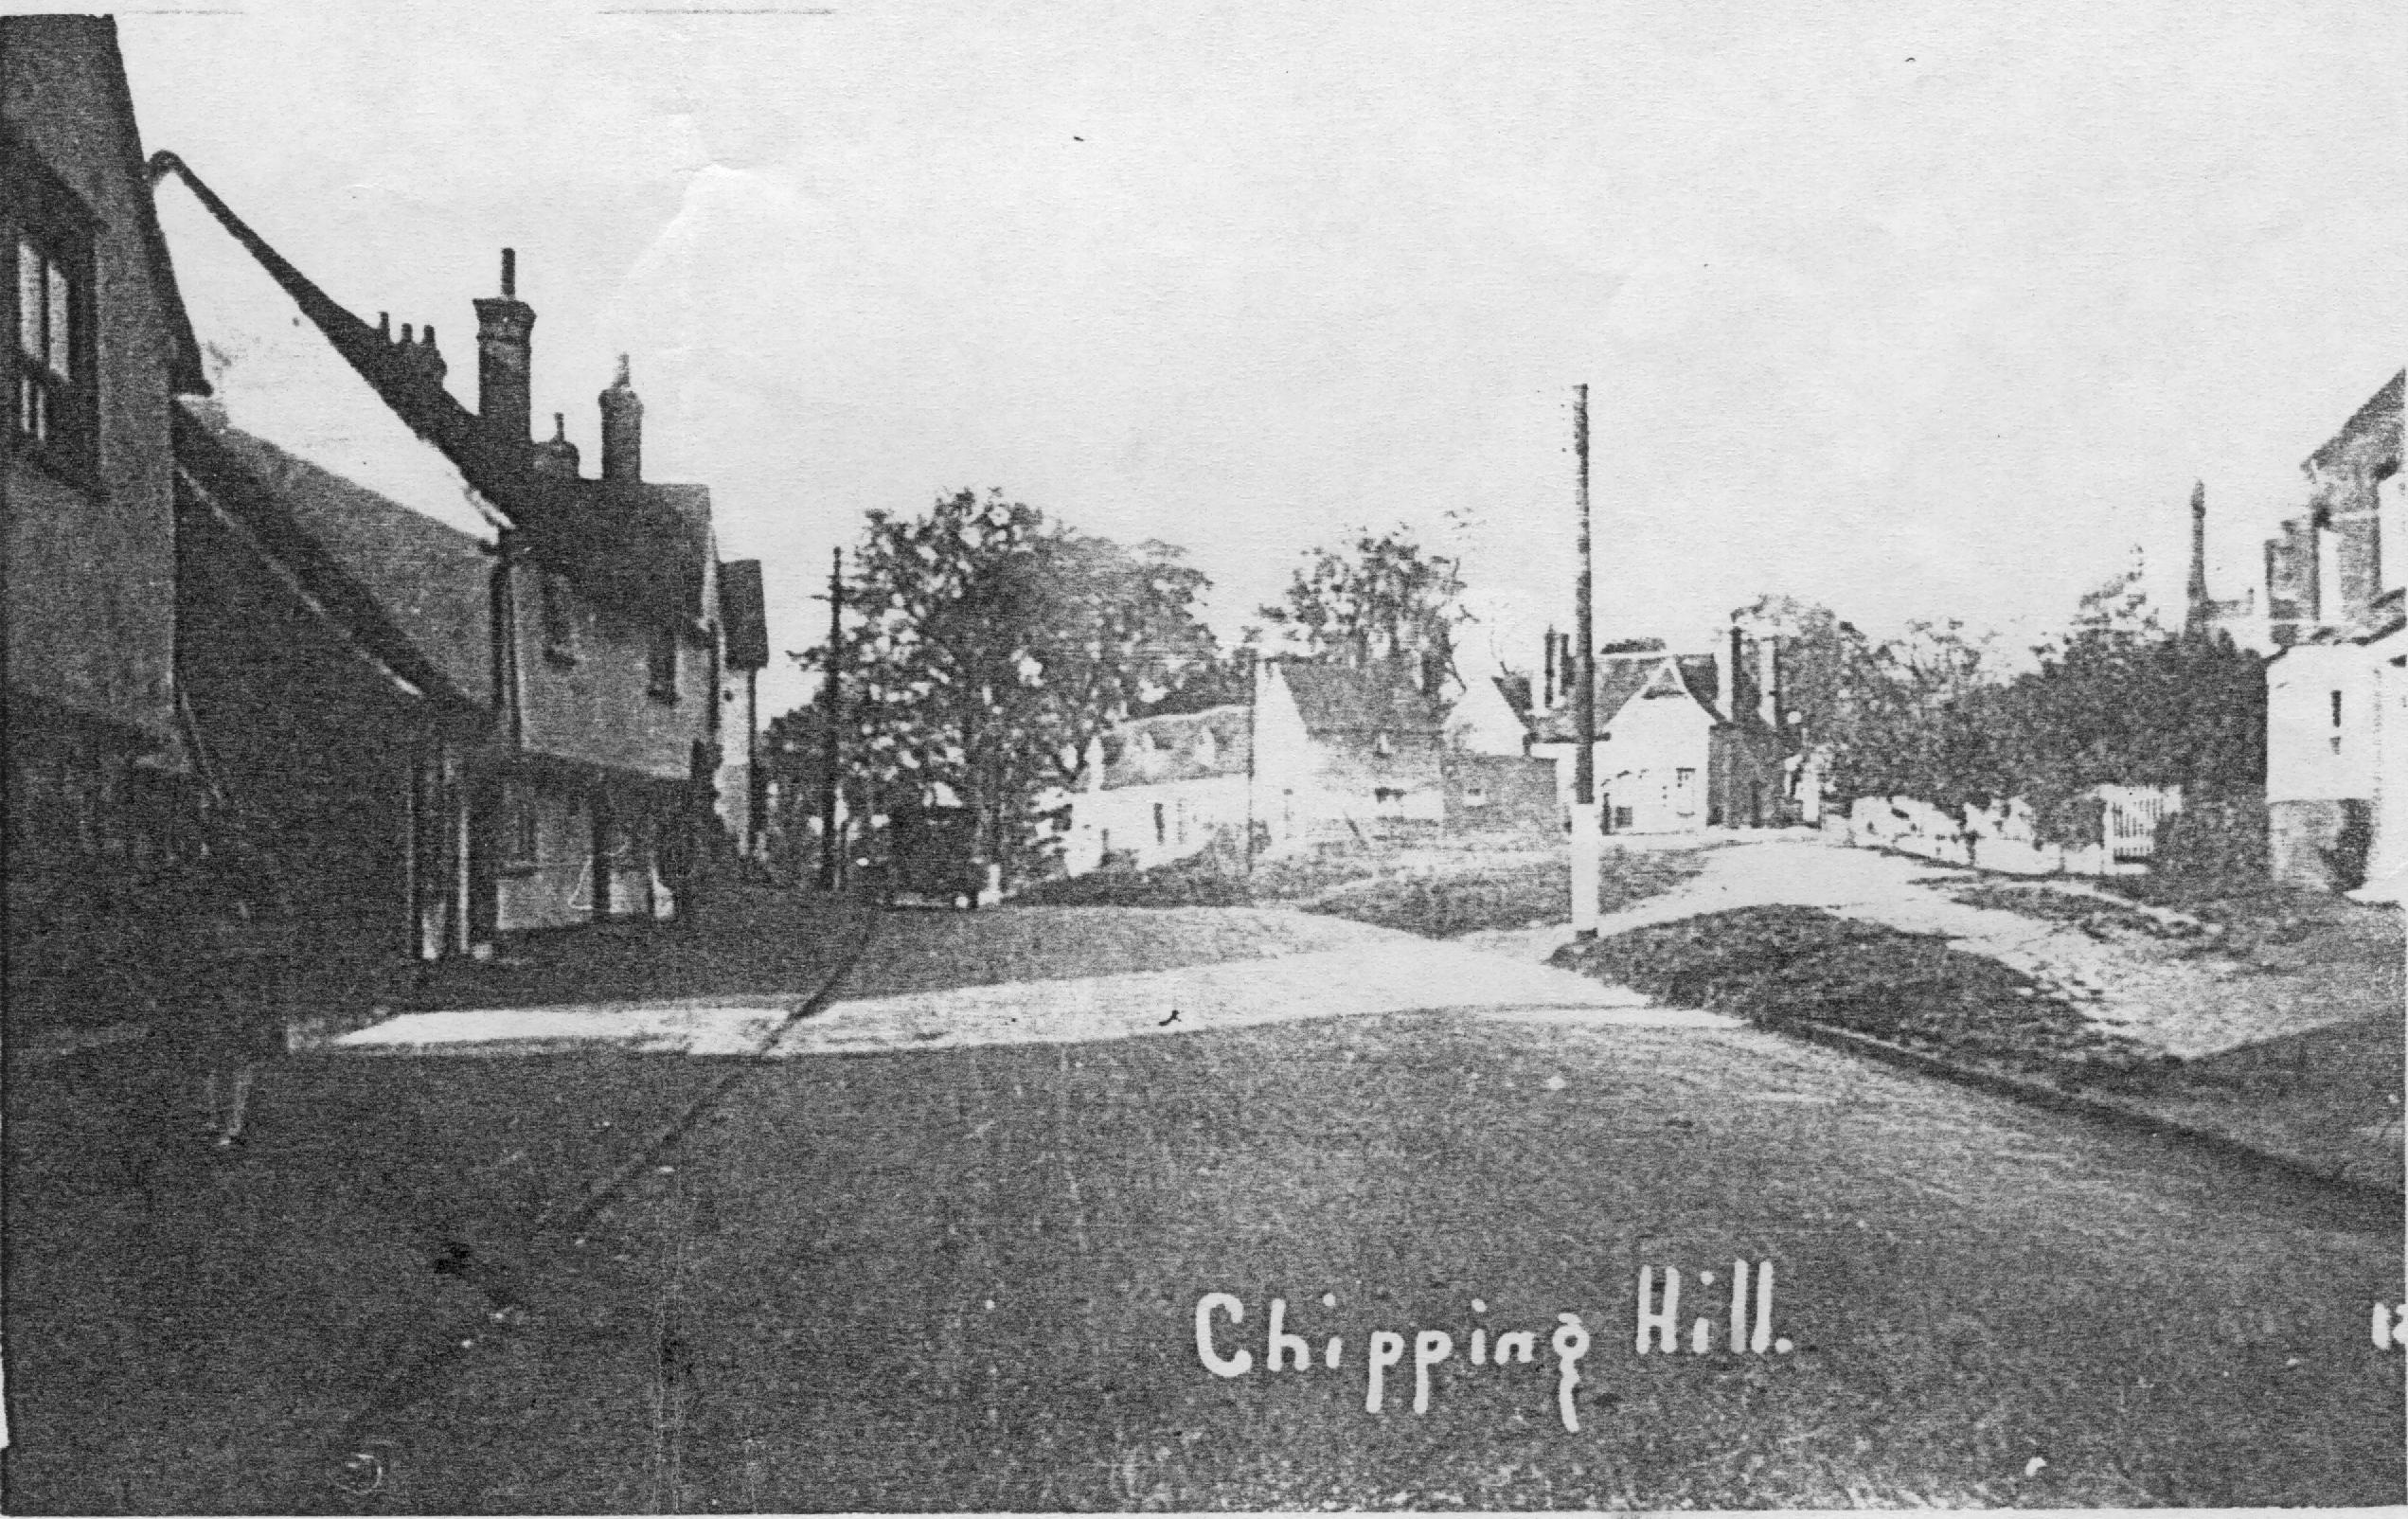 MW II 17 c chipping hill towards green for pic 2